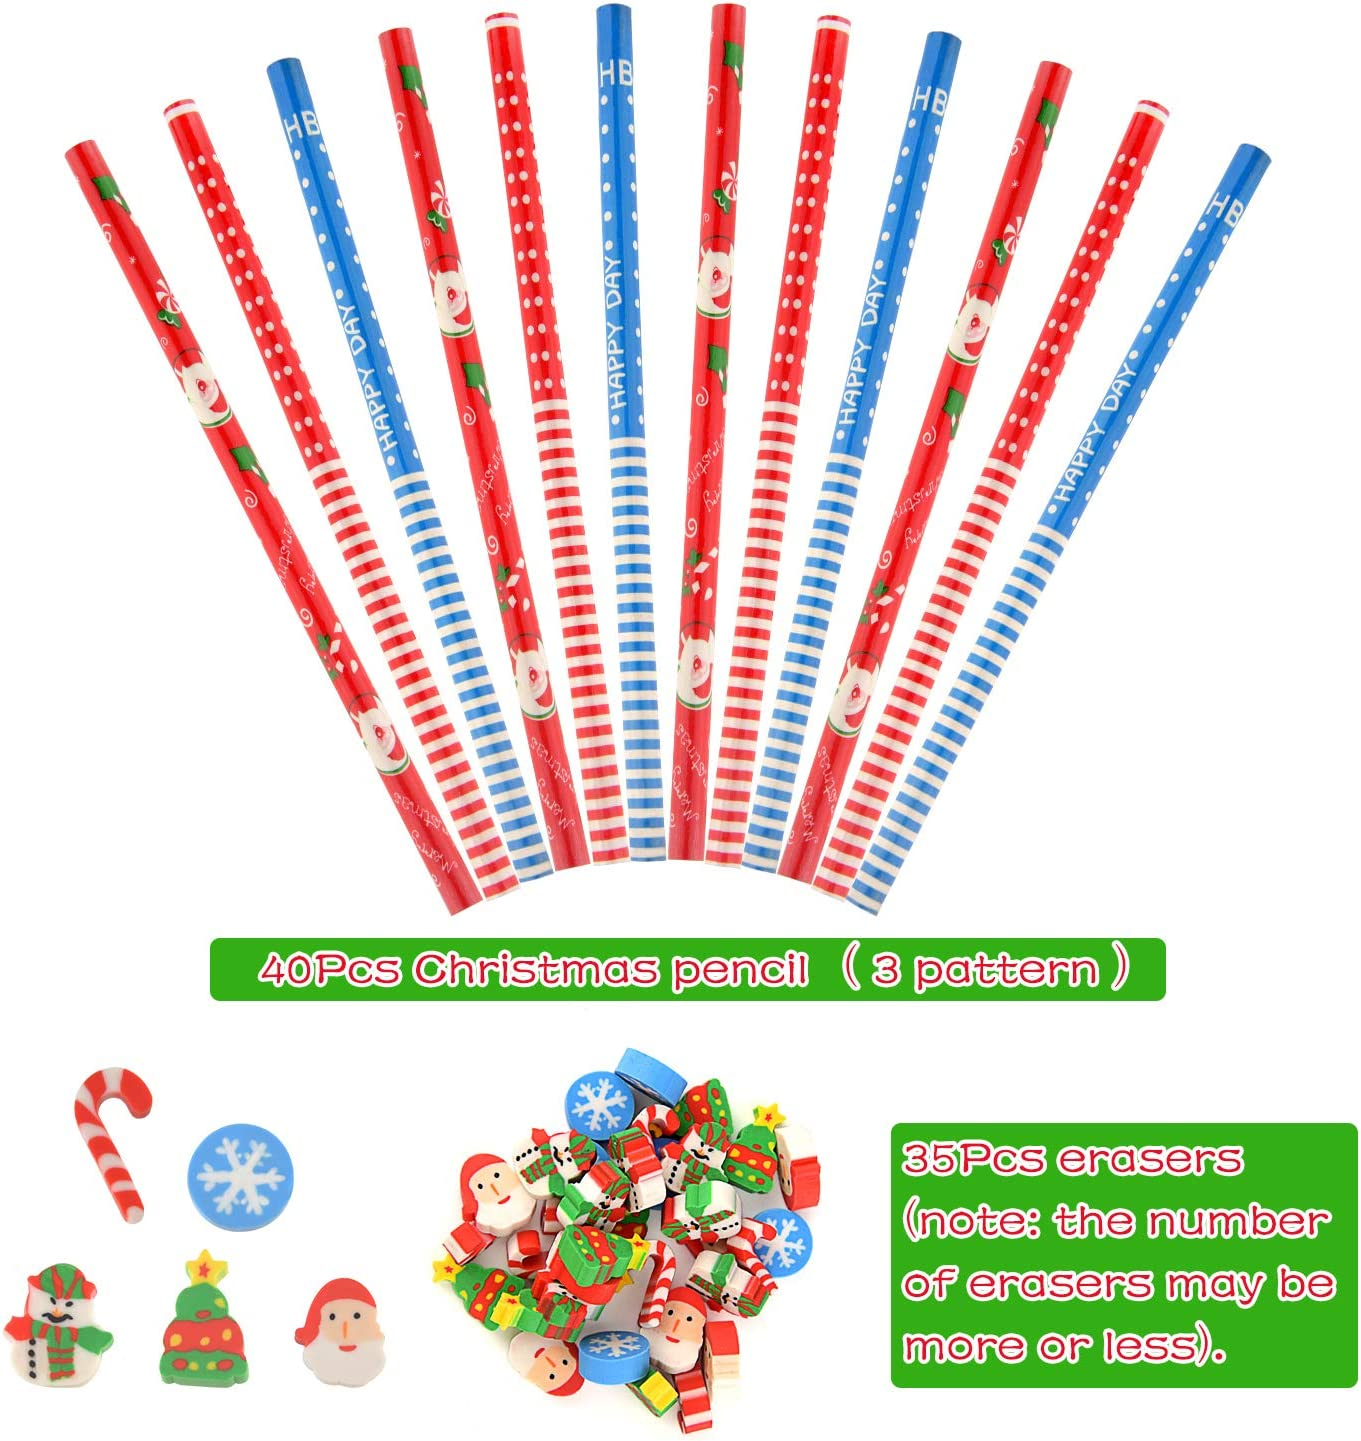 TUPARKA 75 Pcs Christmas Pencil Erasers Set 40Pcs Christmas Pencils with 35Pcs Erasers Fun Stationary Equipment for Party Bag Fillers Party Favor Supplies Funny Gift Idea